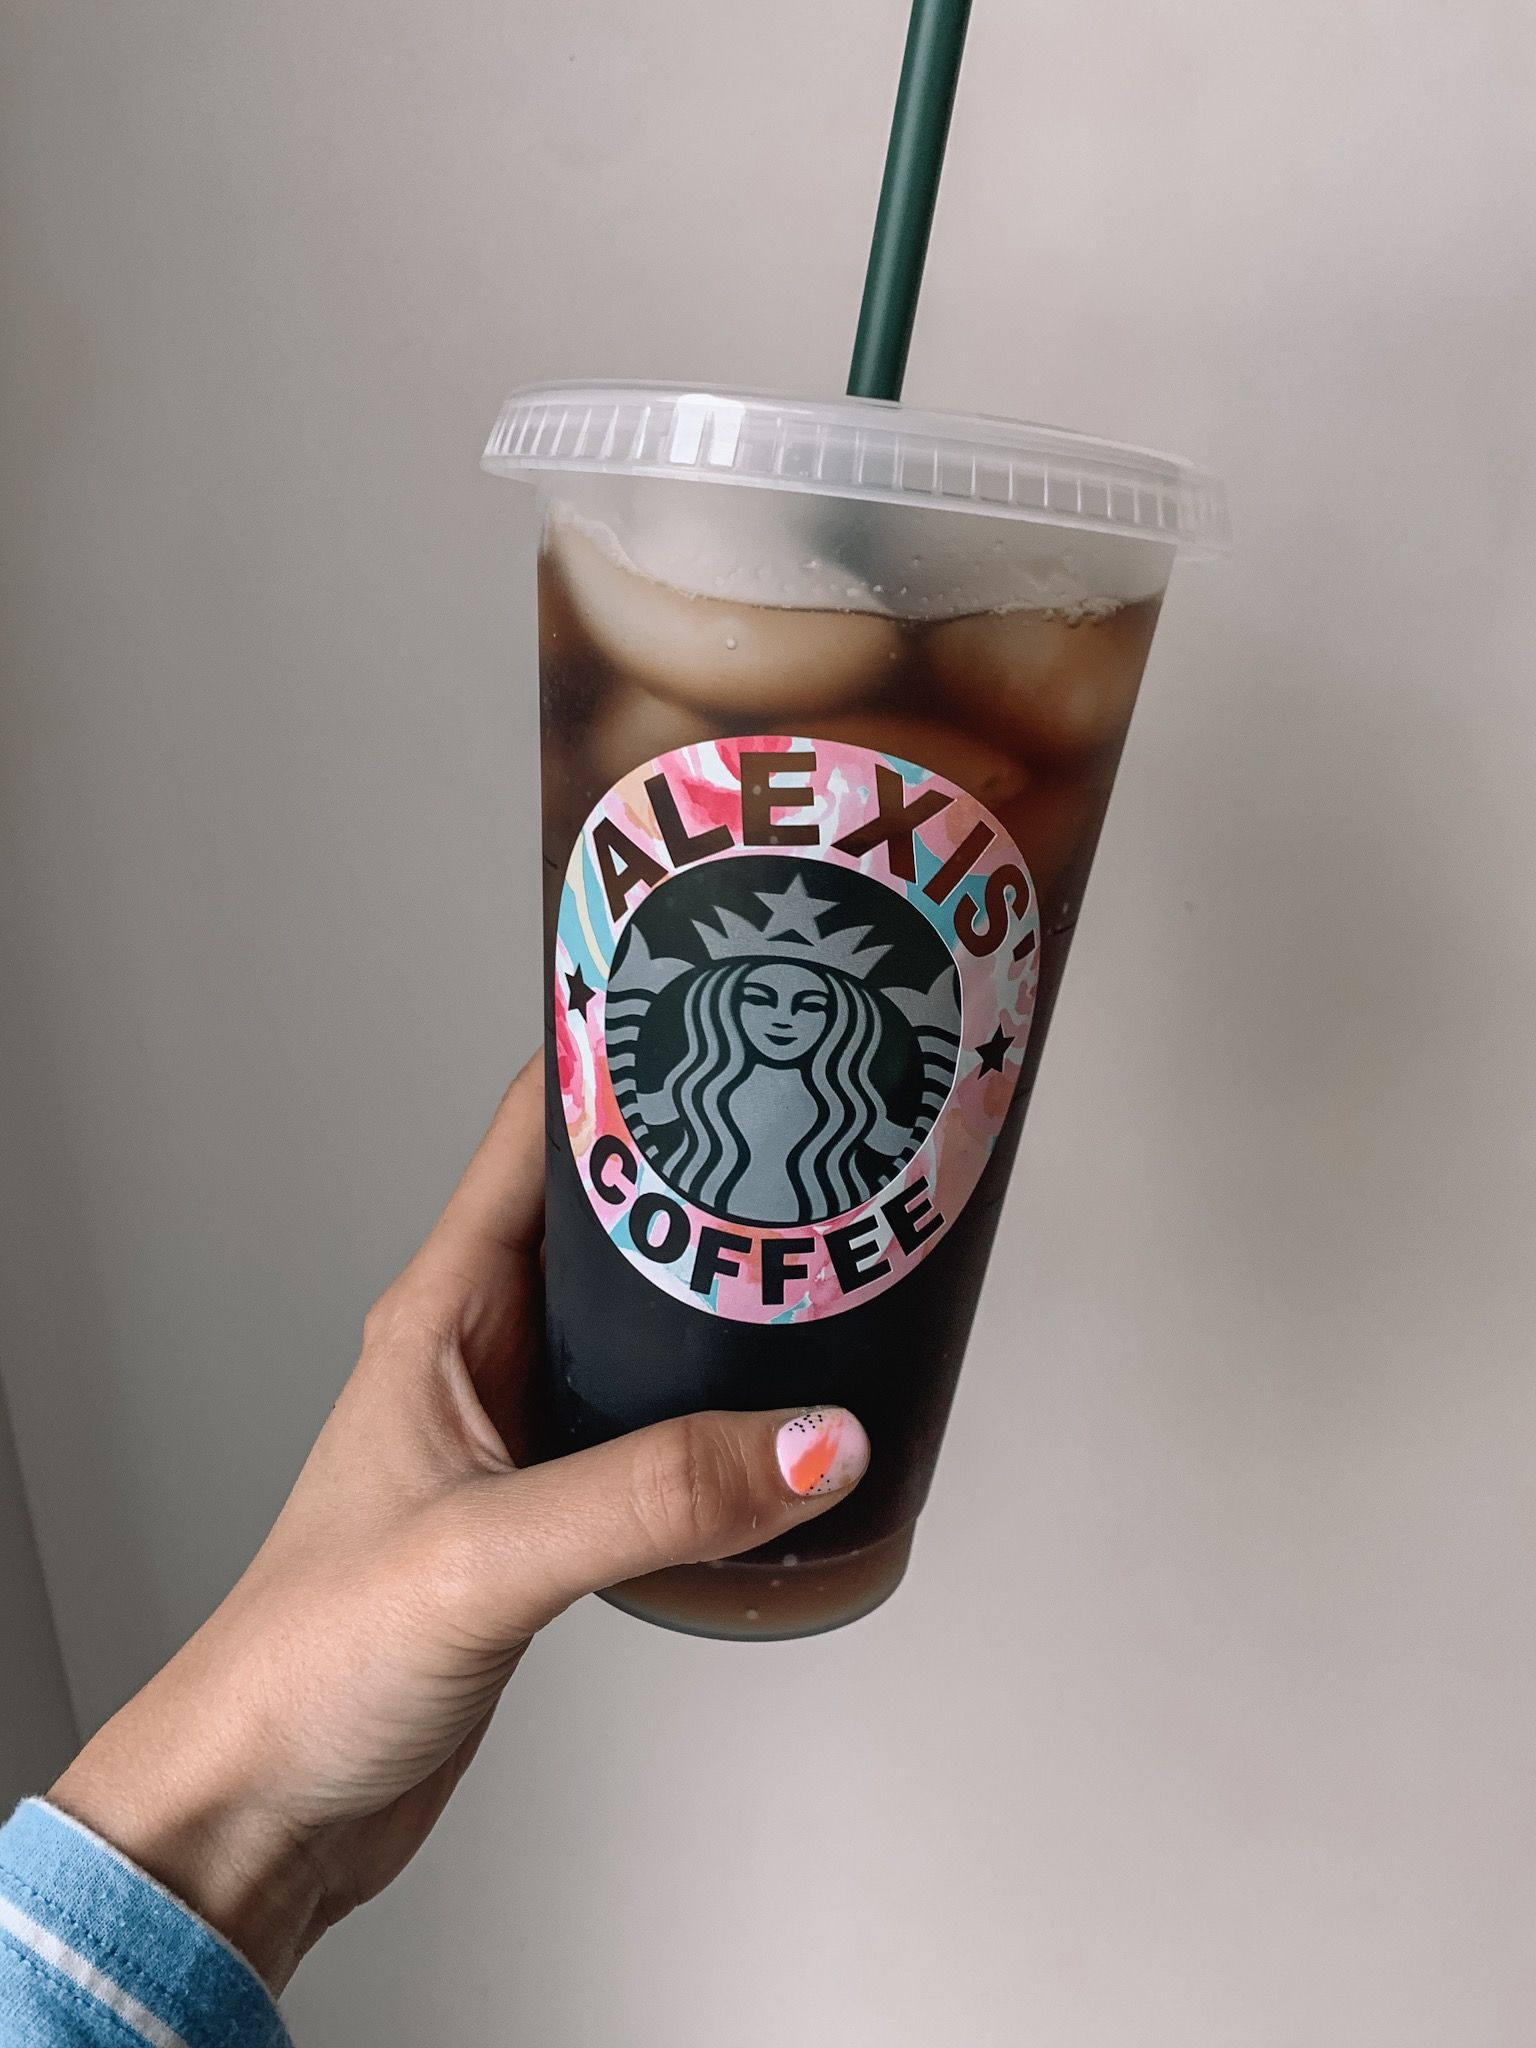 Starbucks, iced coffee, logo, personalized, style, fashion